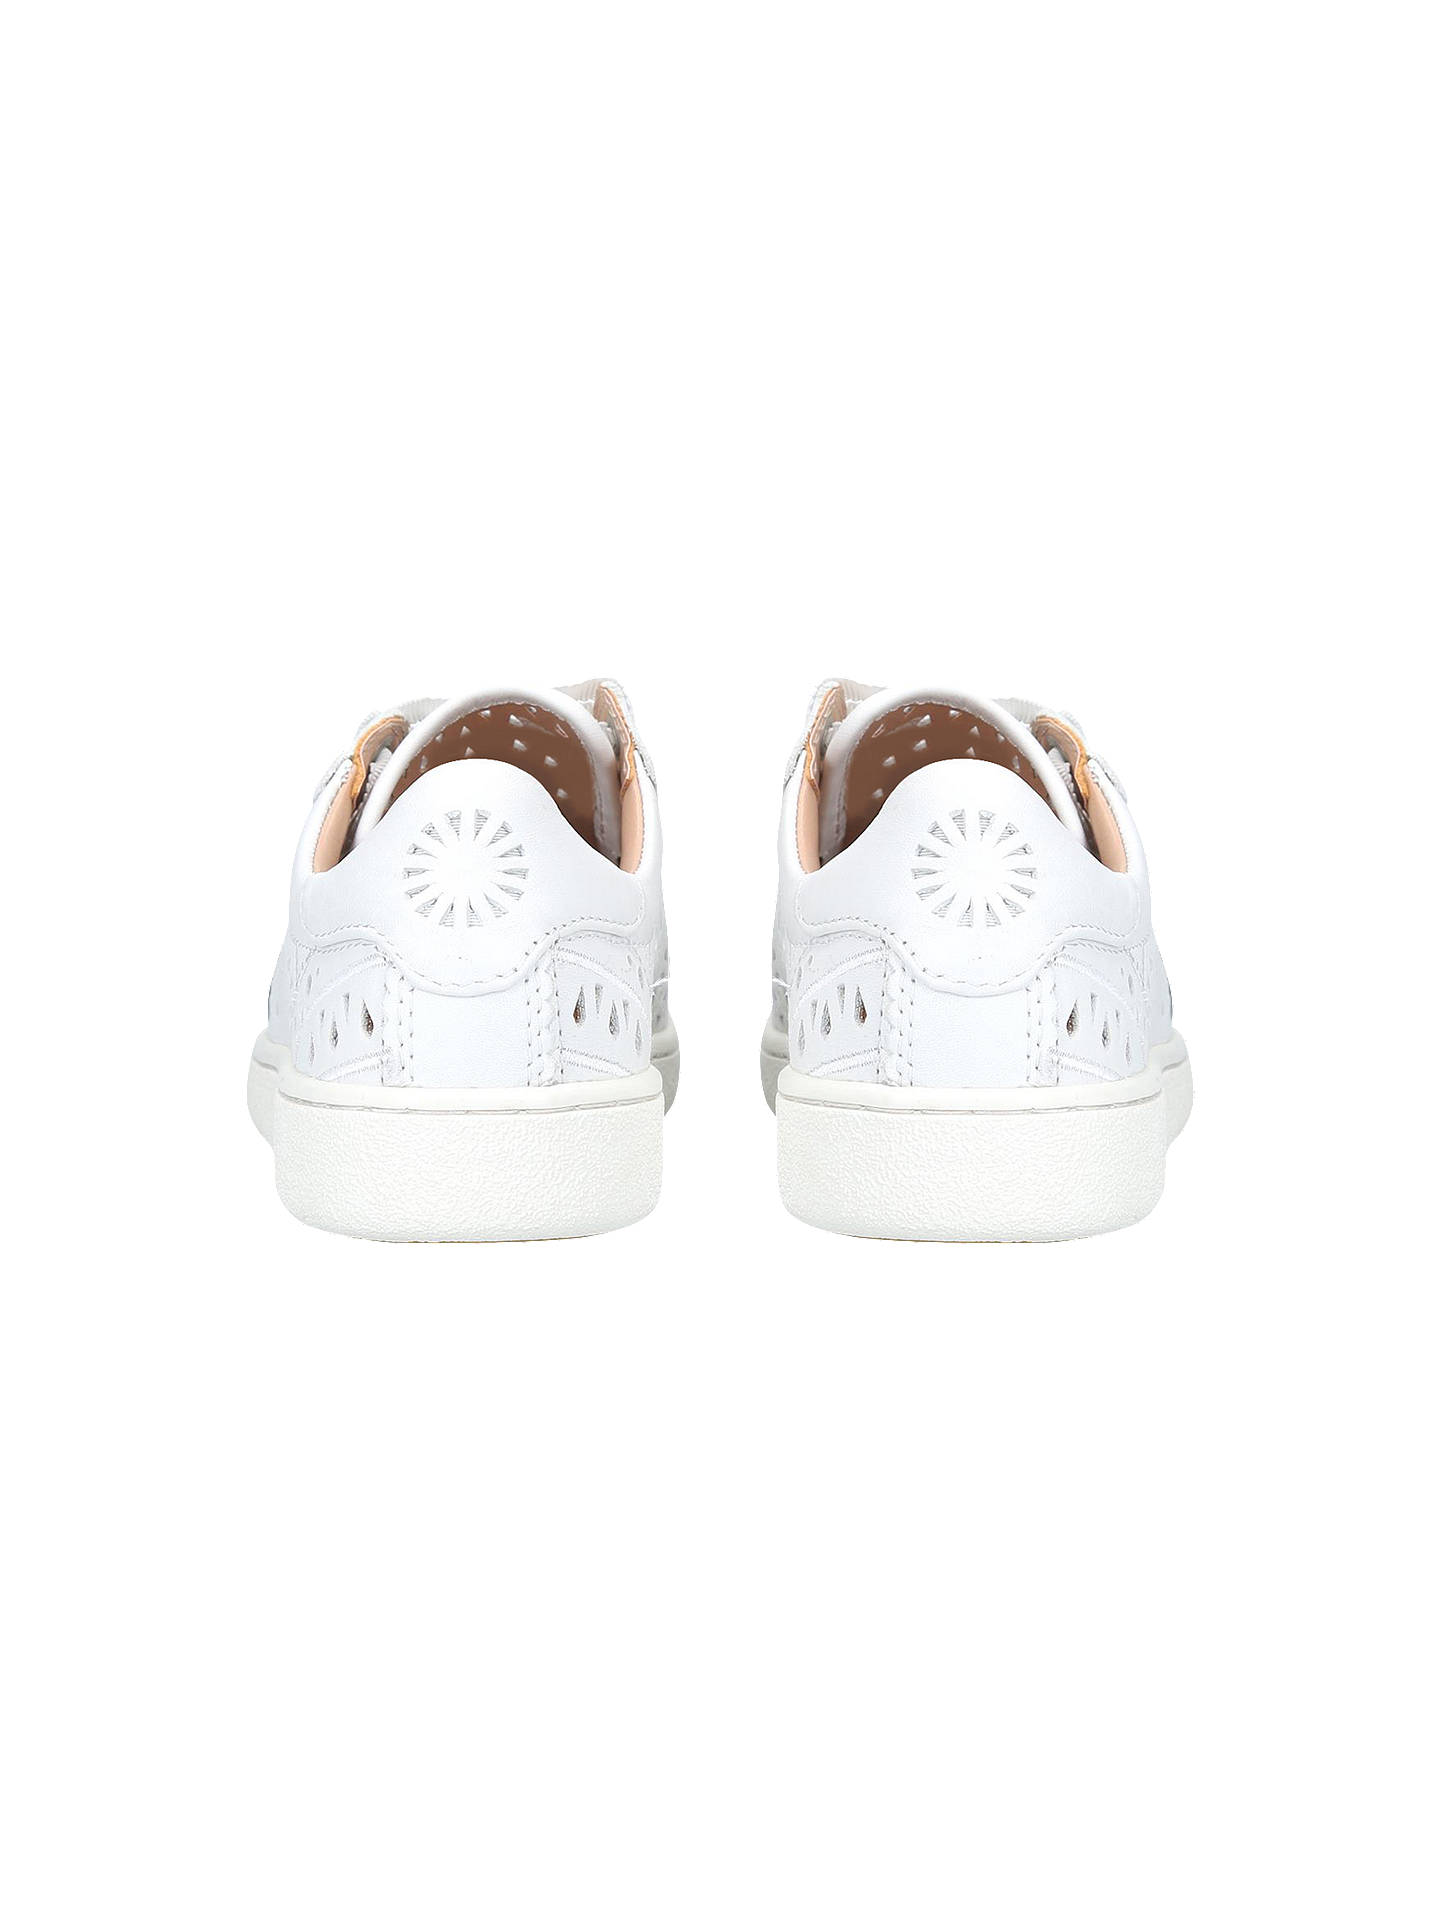 be9961ffc5a UGG Milo Perforated Lace Up Trainers at John Lewis & Partners